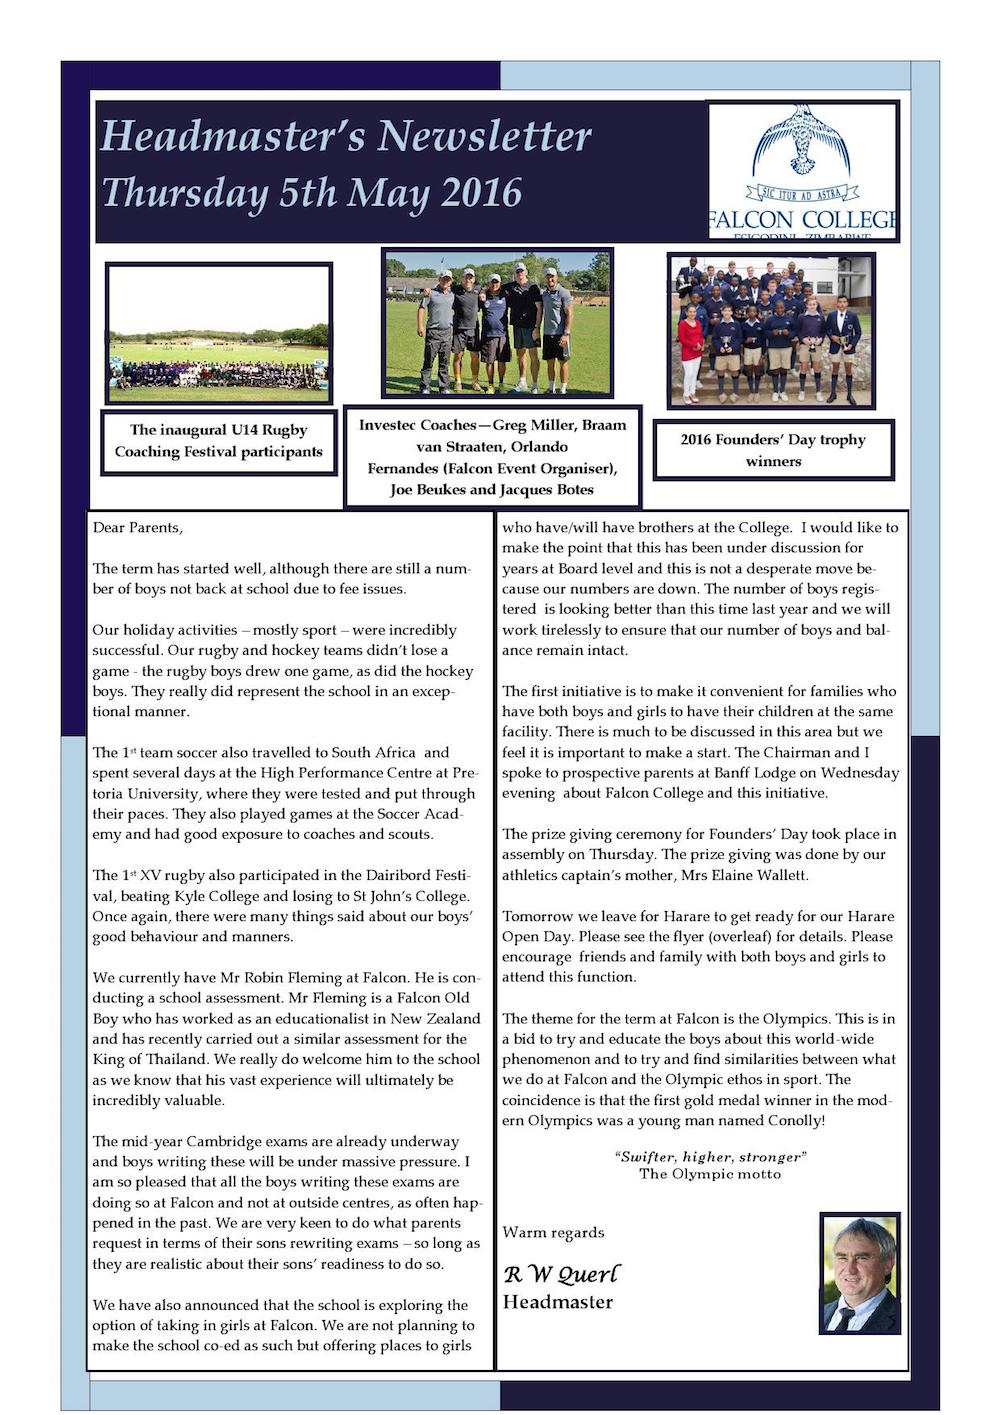 Headmaster's Newsletter Thursday 5th May 2016 edited_000001